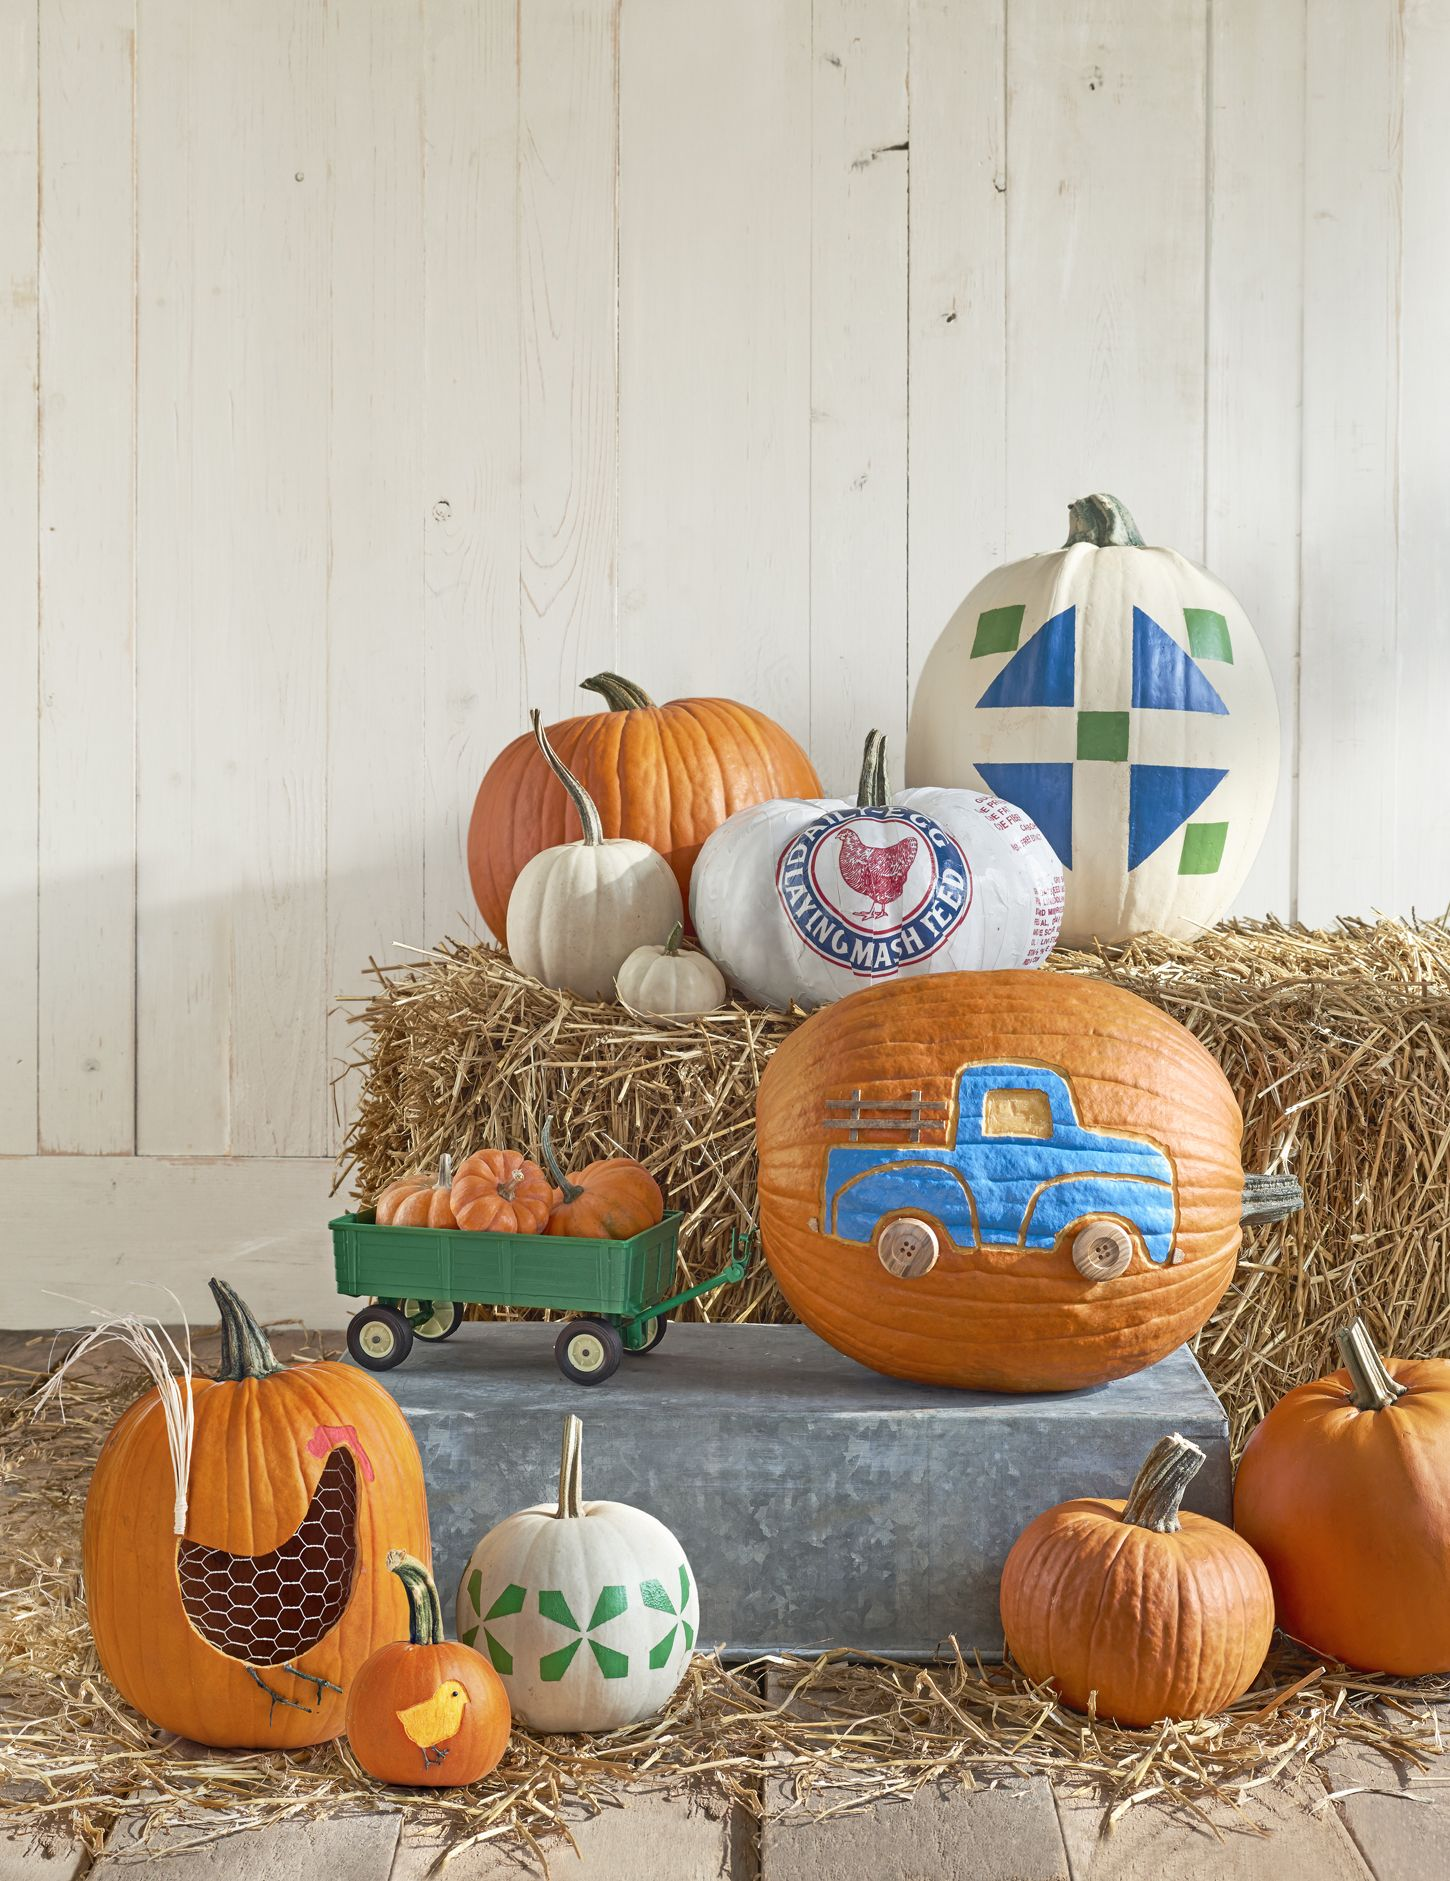 85+ New Ways to Decorate Your Halloween Pumpkins Hens, Pumpkin - Decorate For Halloween